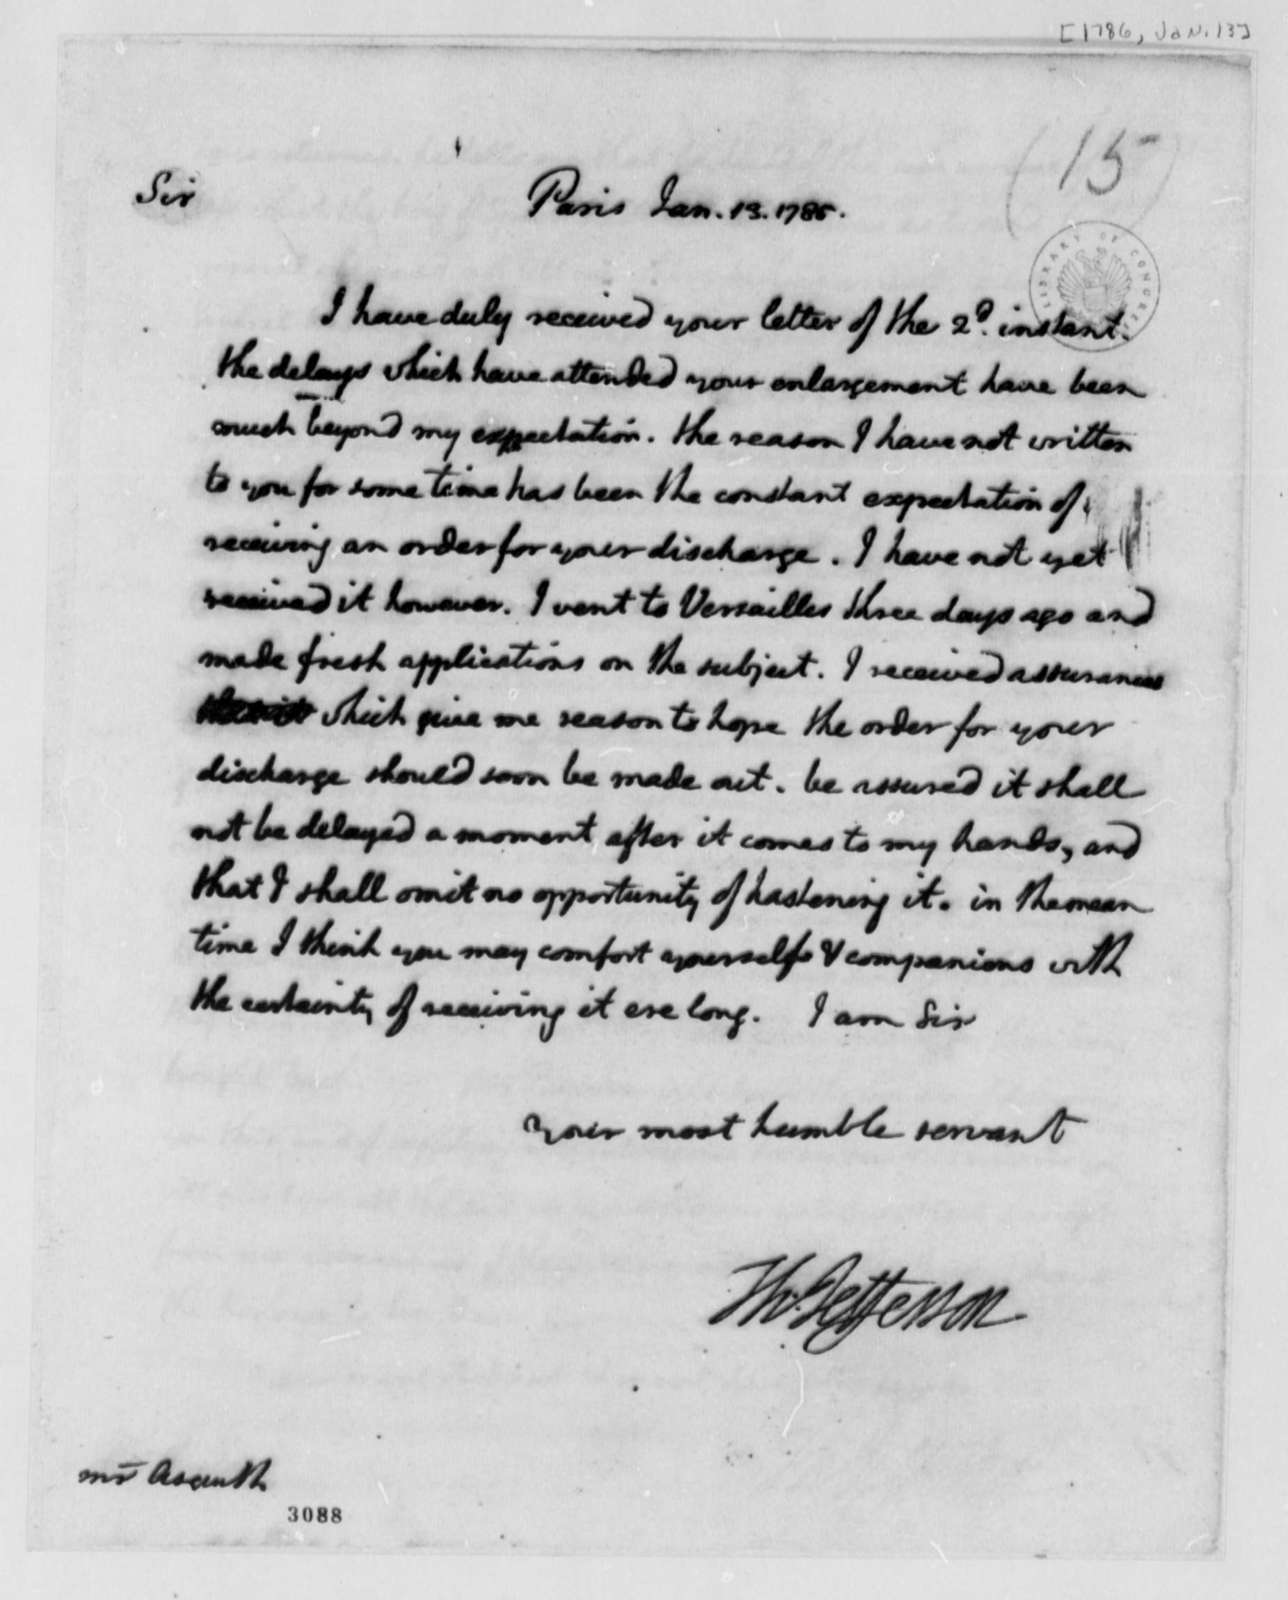 Thomas Jefferson to Lister Asquith, January 13, 1786, William & Catherine (ship)